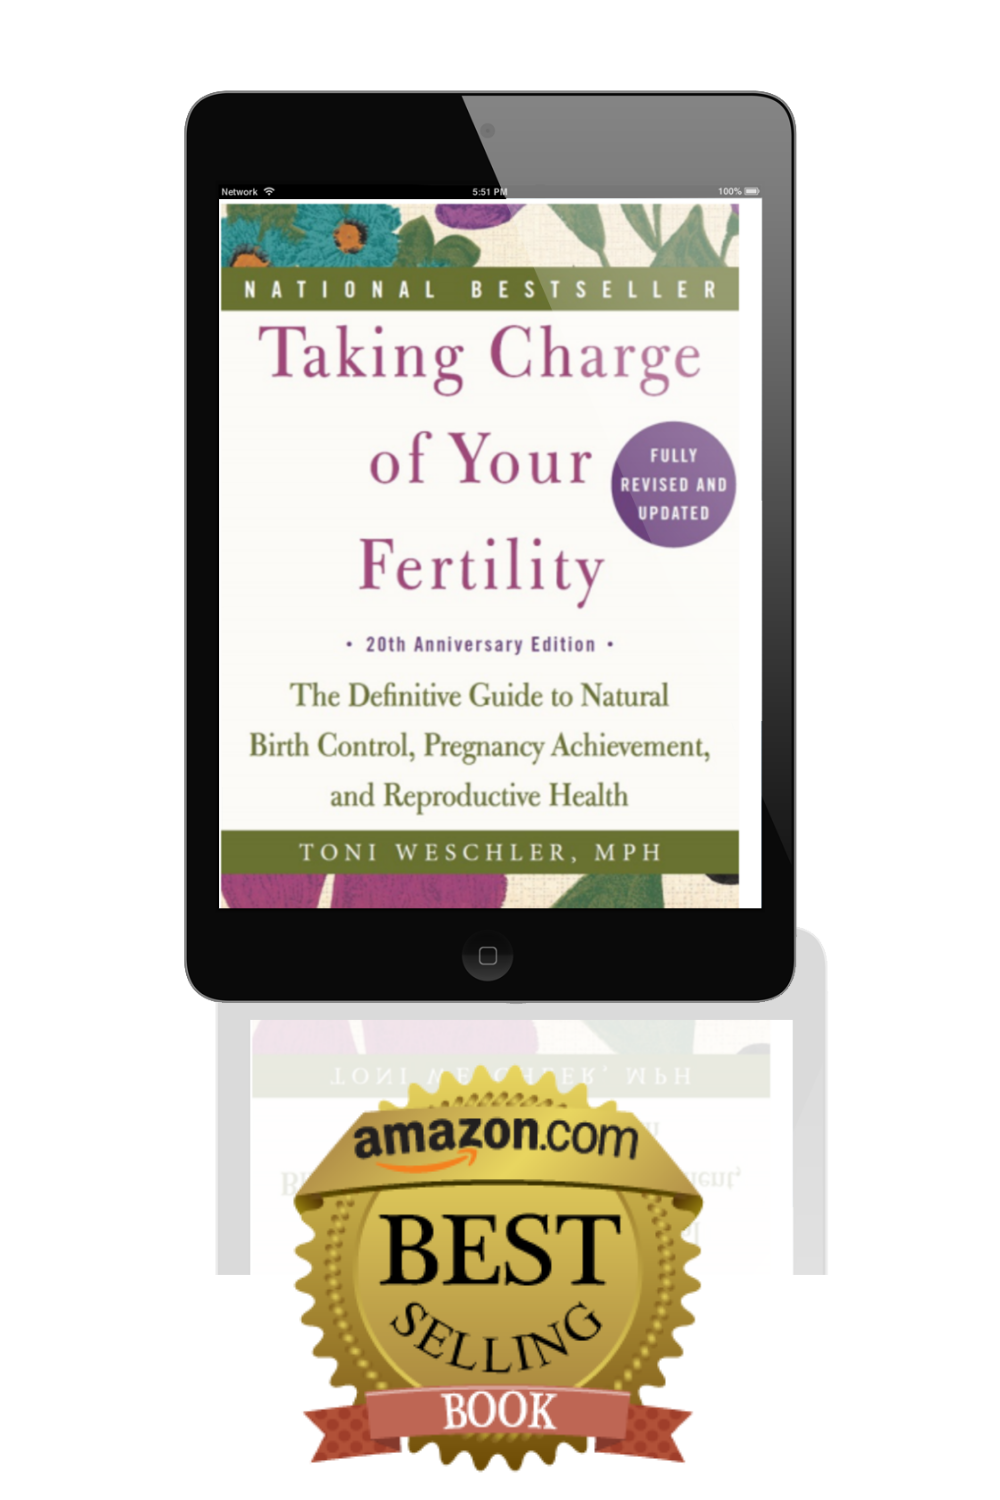 The best must-read books about infertility and the struggle of getting pregnant. These books will give you hope, inspire you and make you laugh. Full of tons of tips, personal stories and ideas for improving your fertility.  #takingchargeofyourfertility #taking #charge #of #your #fertility